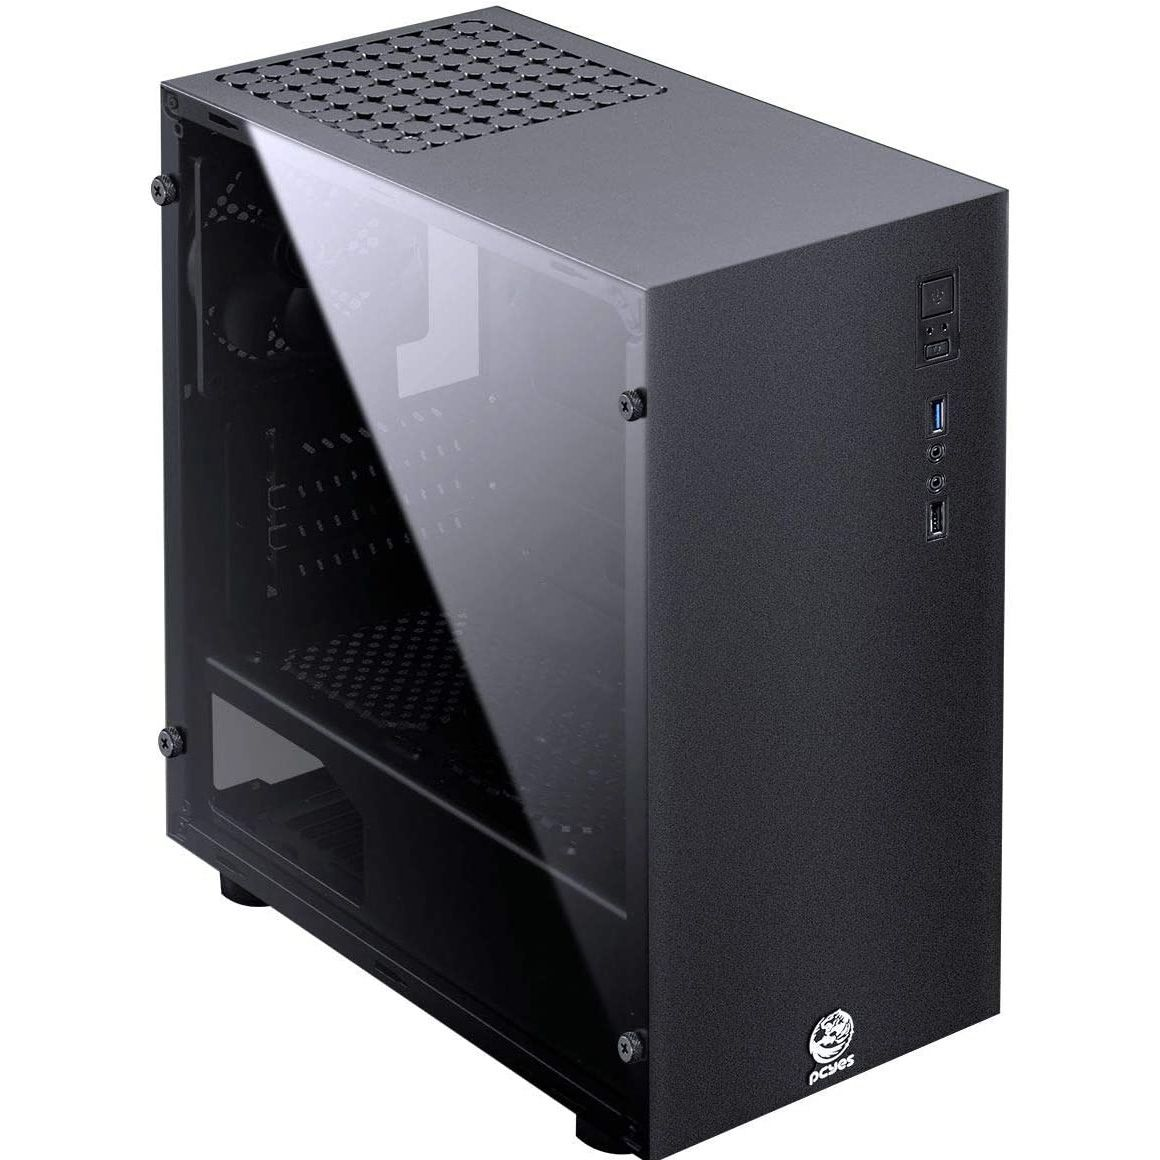 Gabinete PC YES Mid Tower Terra 2 FANS Lateral Acrílico Preto - TERPT2FCA